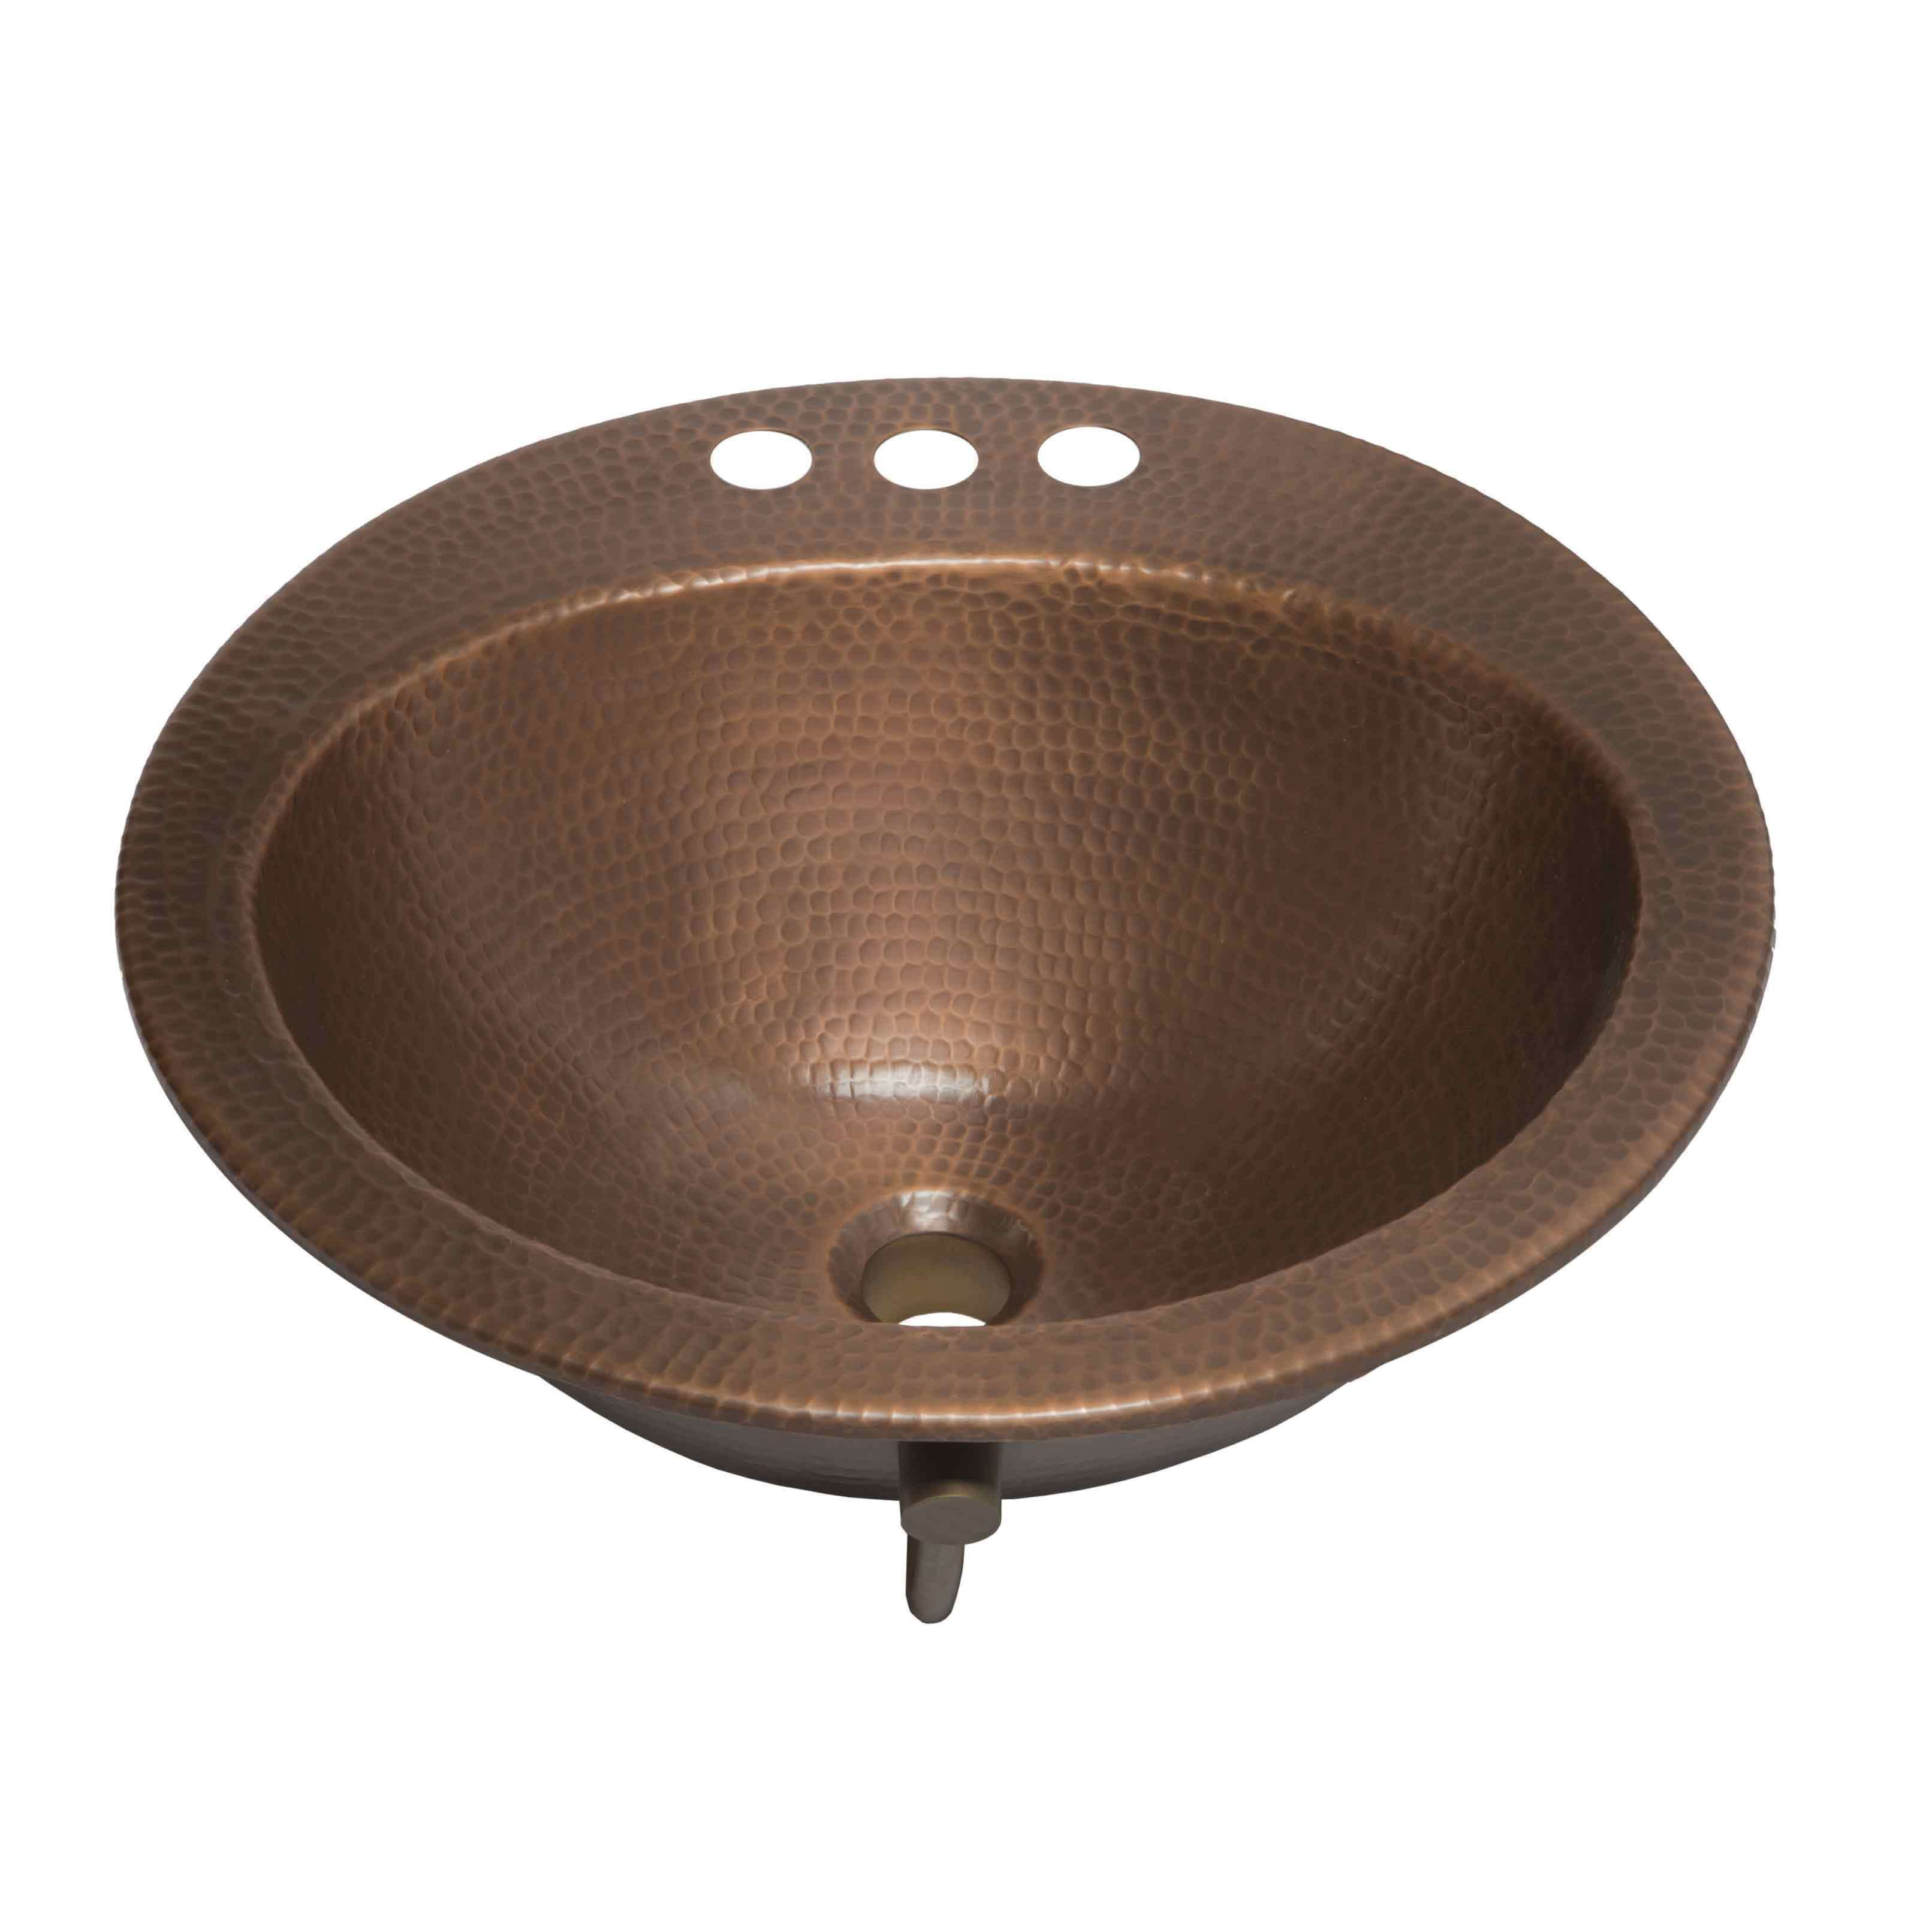 The Bell Copper Sink By Sinkology Is Perfectly Designed To Be A Easy